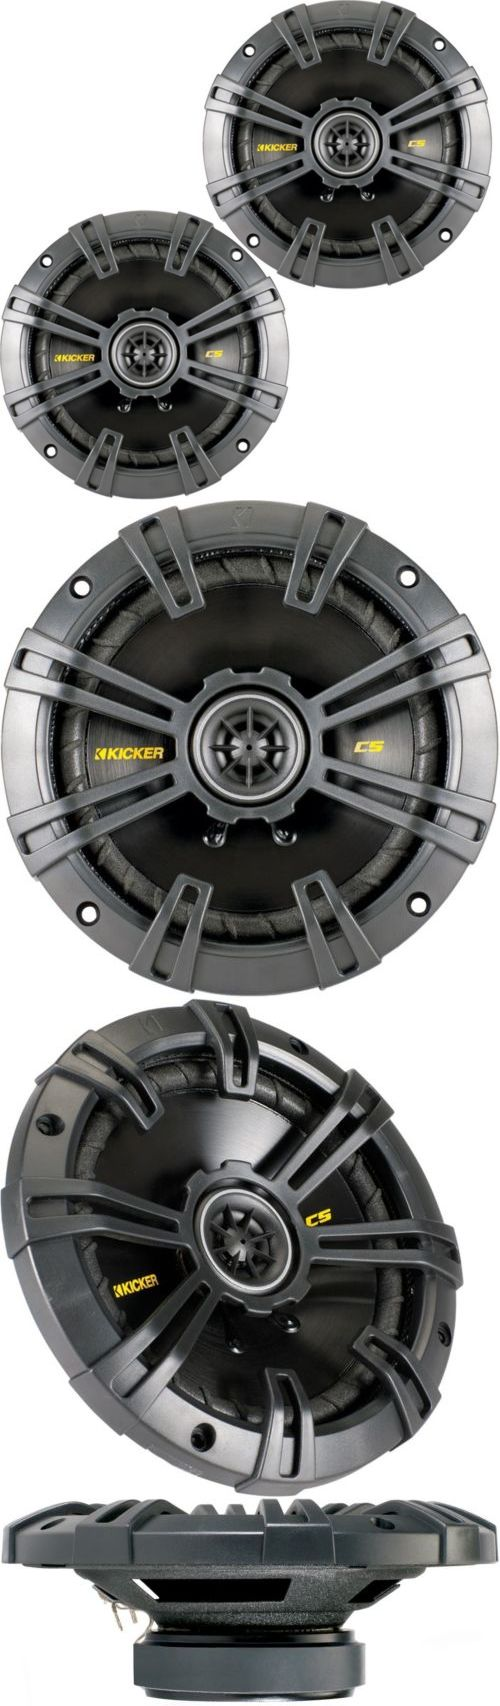 Car Speakers and Speaker Systems: Kicker 40Cs54 Car Audio Stereo 5.25 2-Way Cs Series Speakers Set Pair 5-1 /4 BUY IT NOW ONLY: $49.95